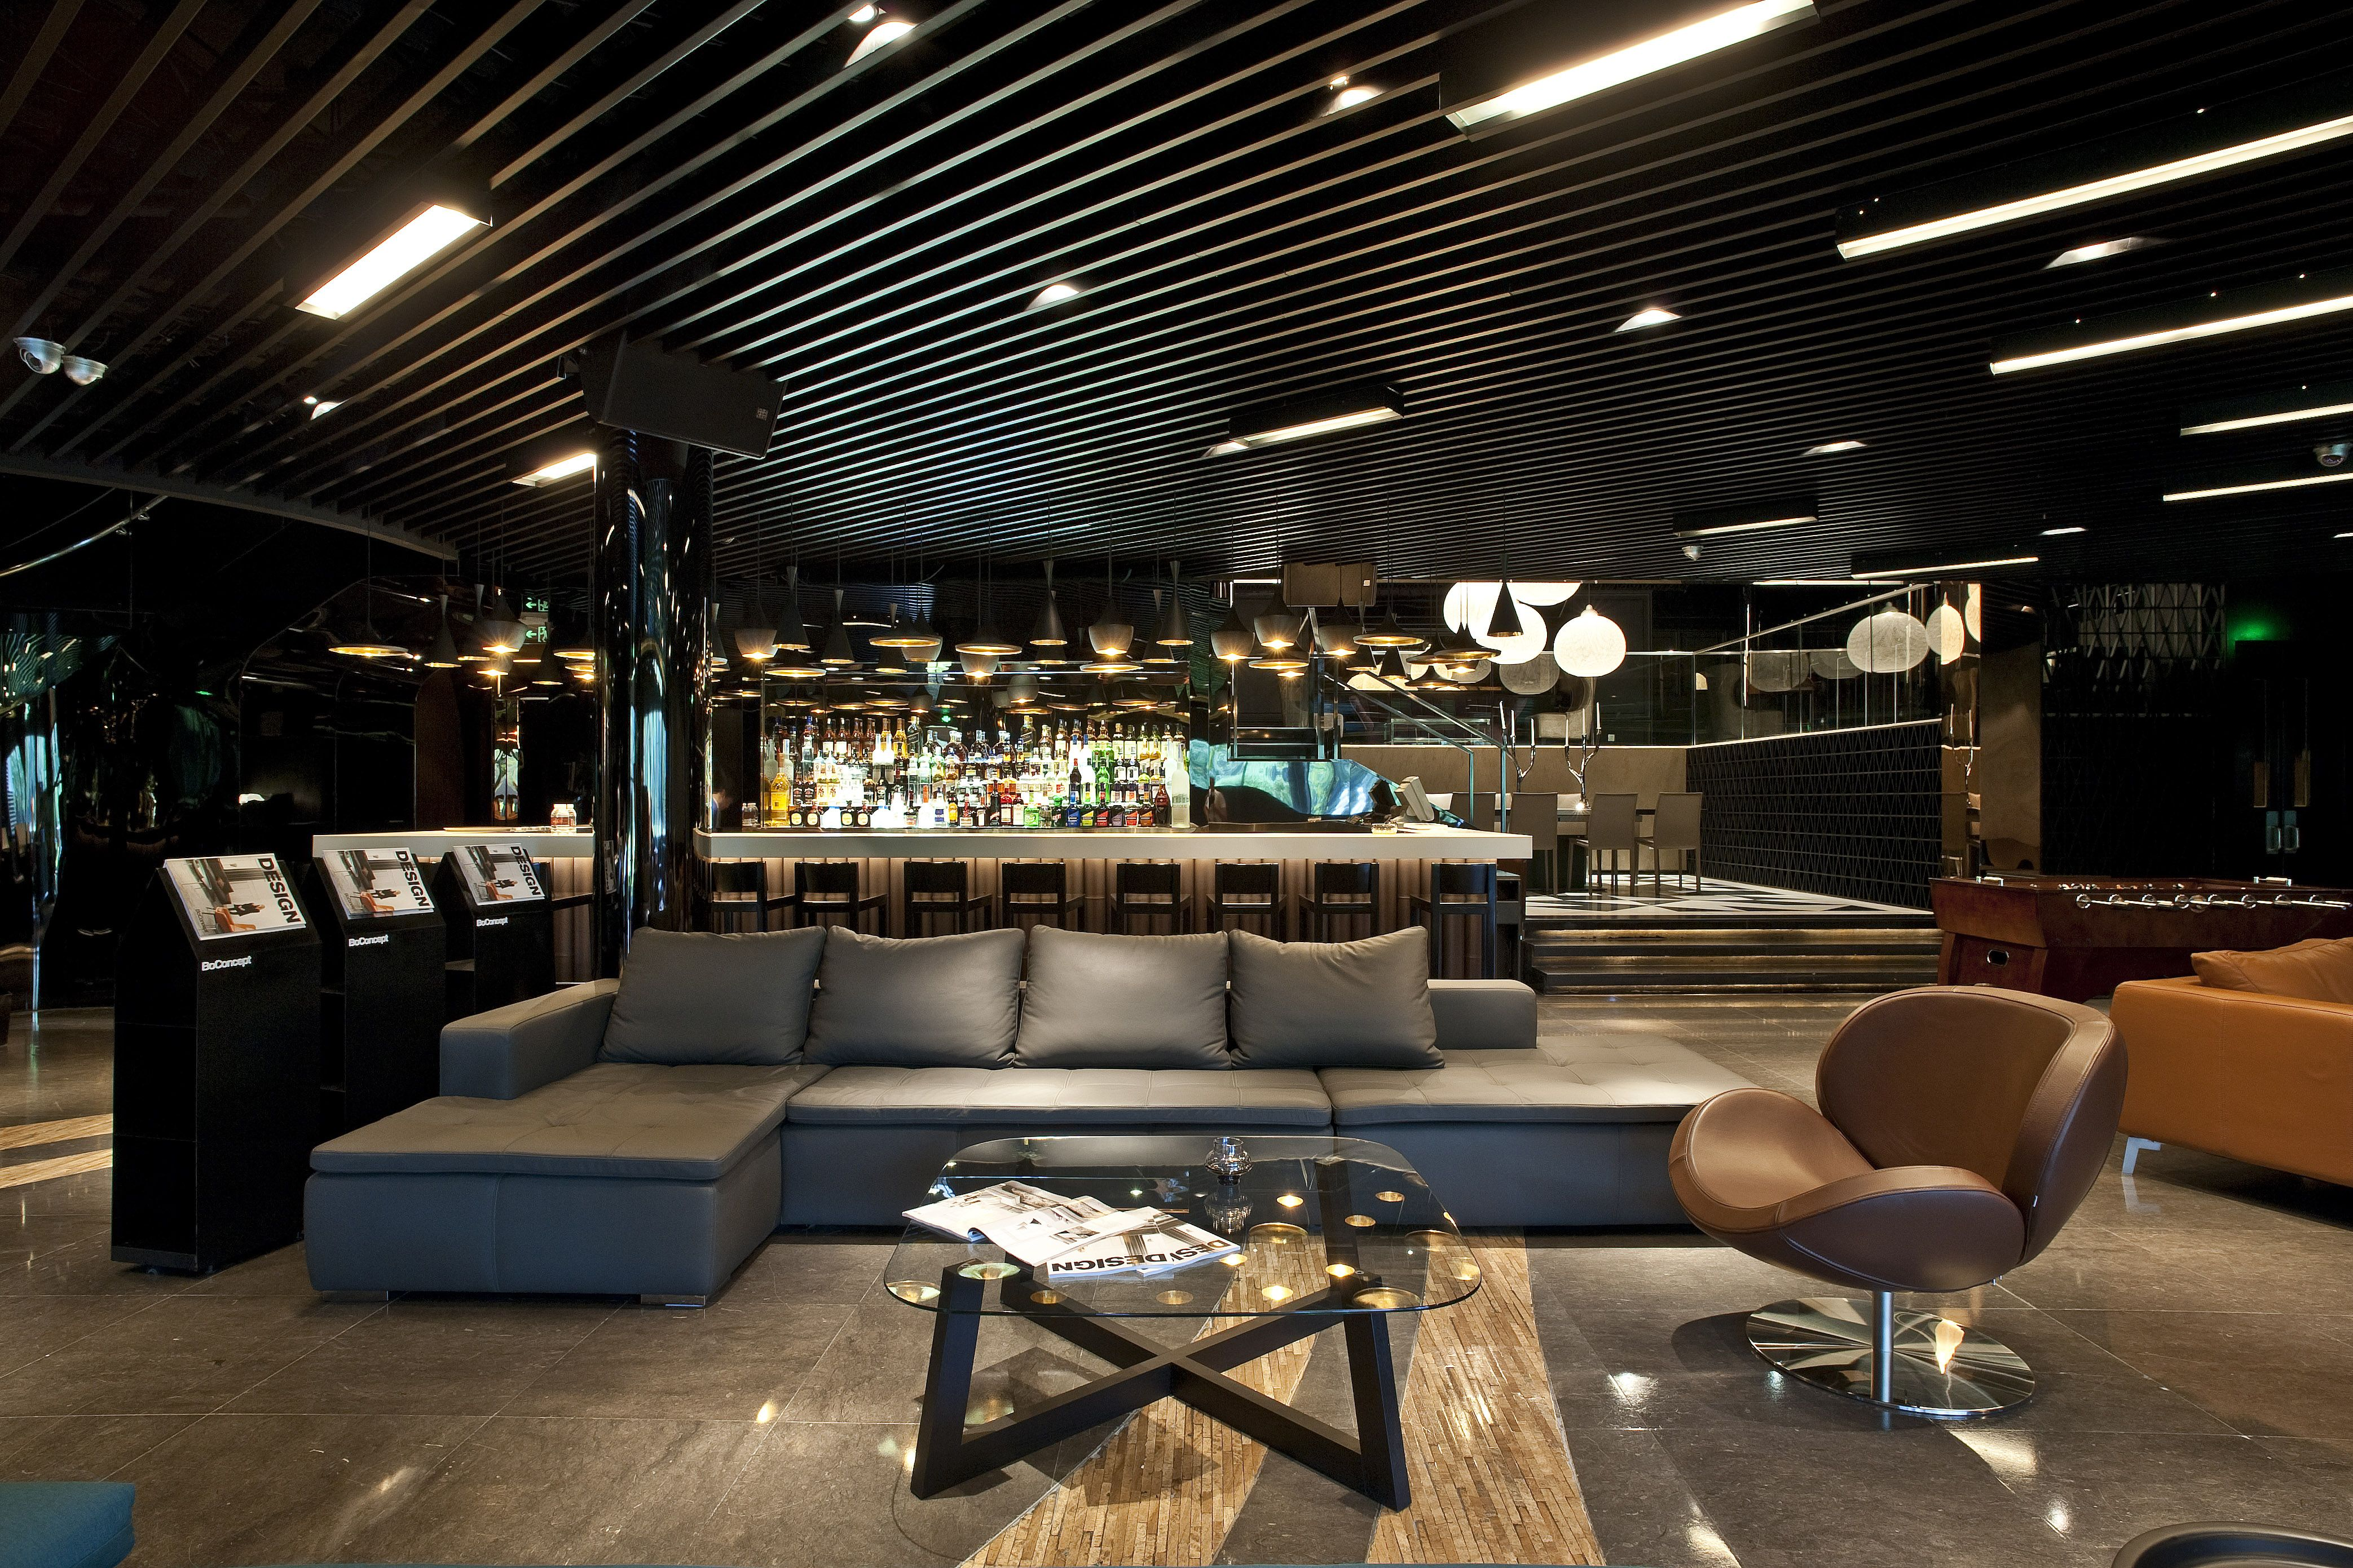 Boconcept Mezzo Sofa And Schelly Chair In Muse Vip Lounge